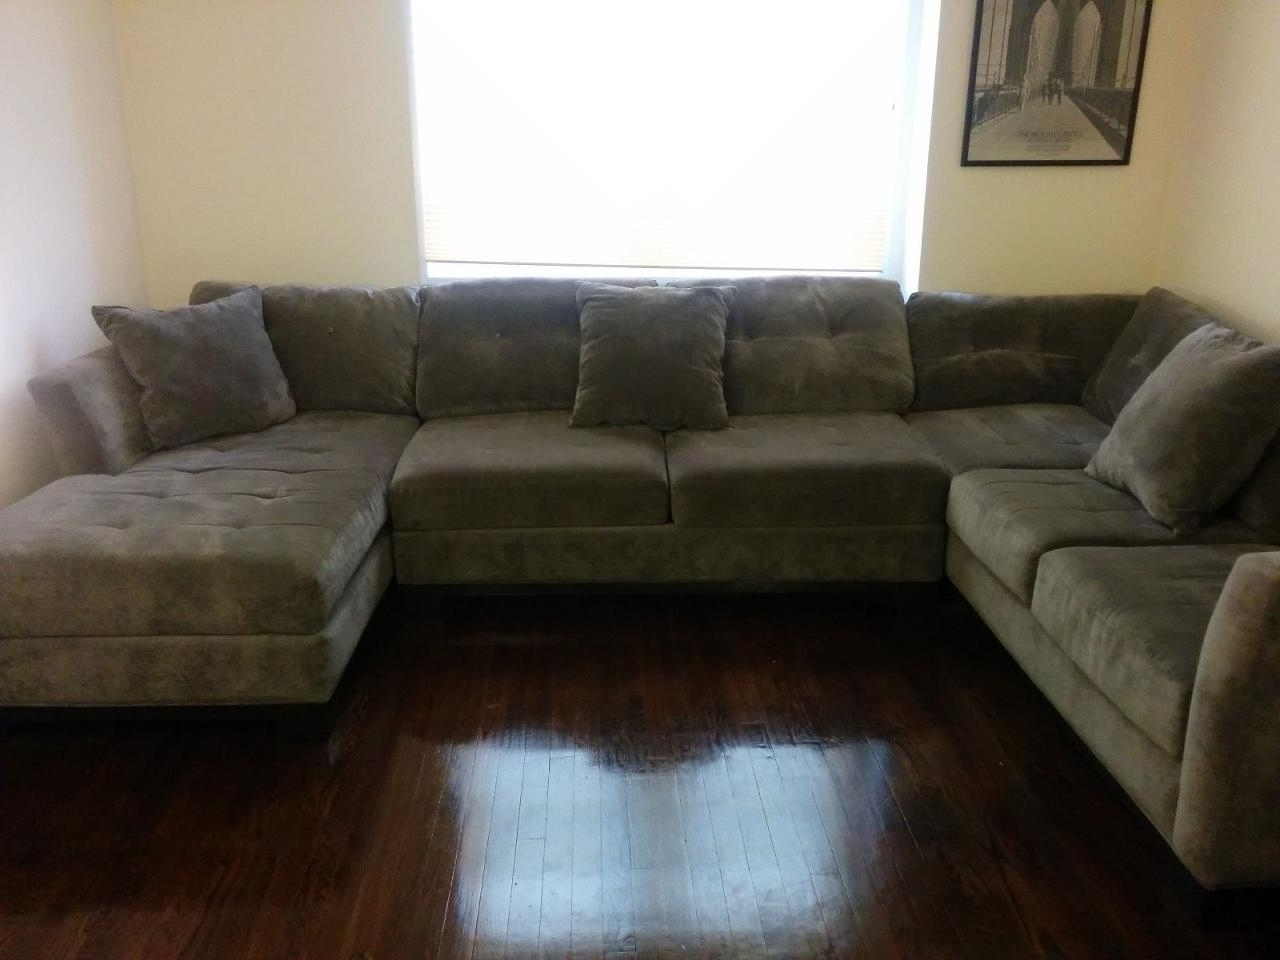 3 Piece Sectional Sofas With Chaise With Regard To Fashionable Elegant Elliot Sectional Sofa 3 Piece Chaise 67 For Mitchell Gold (View 8 of 15)